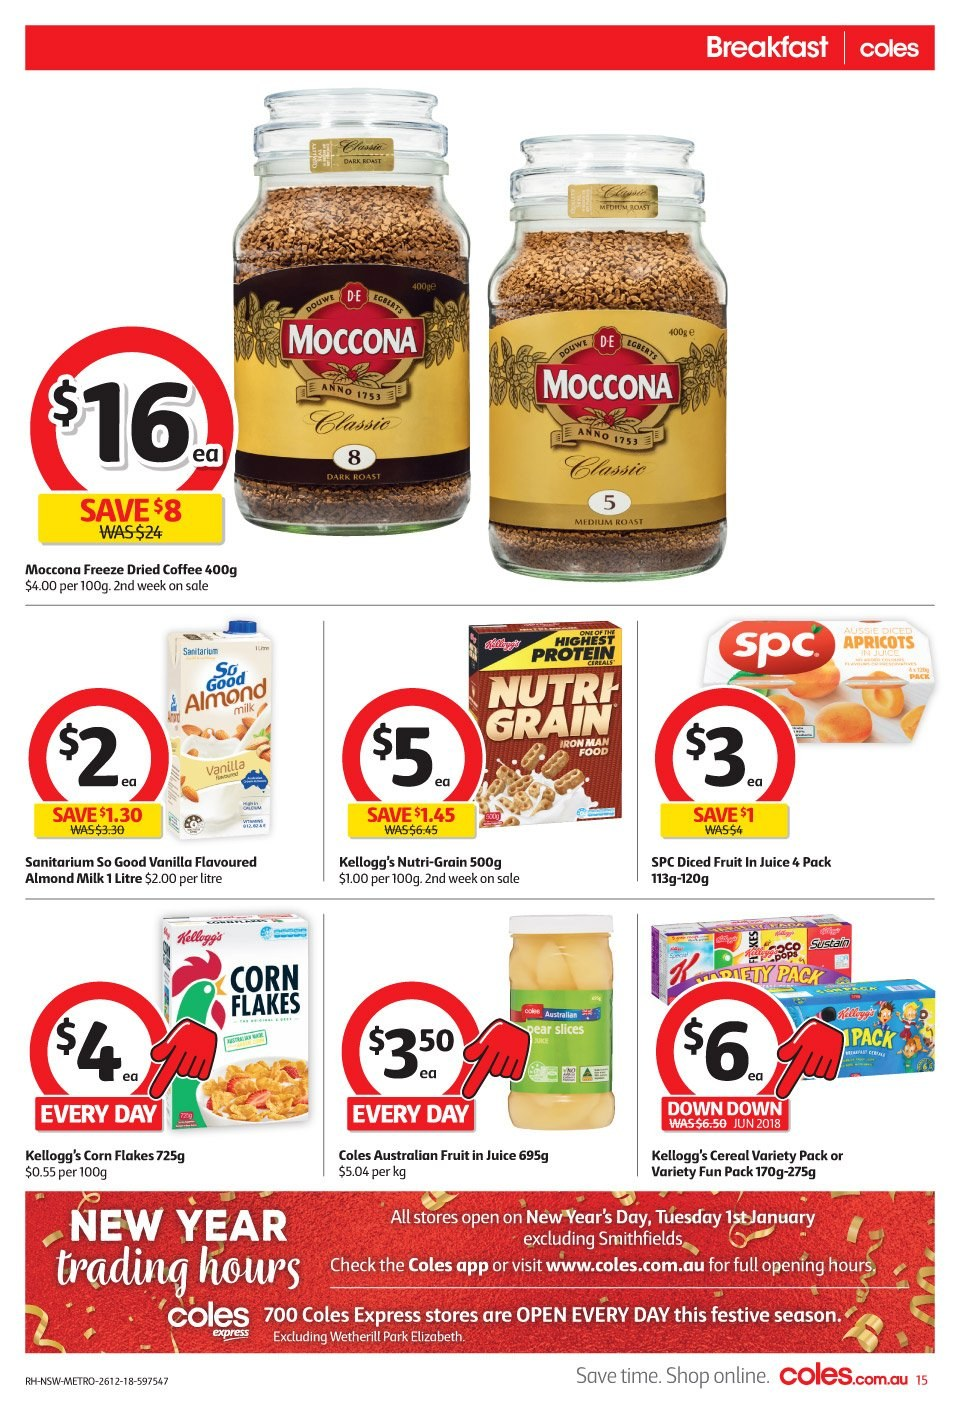 Coles catalogue and weekly specials 26 12 2018 - 1 1 2019 | Au